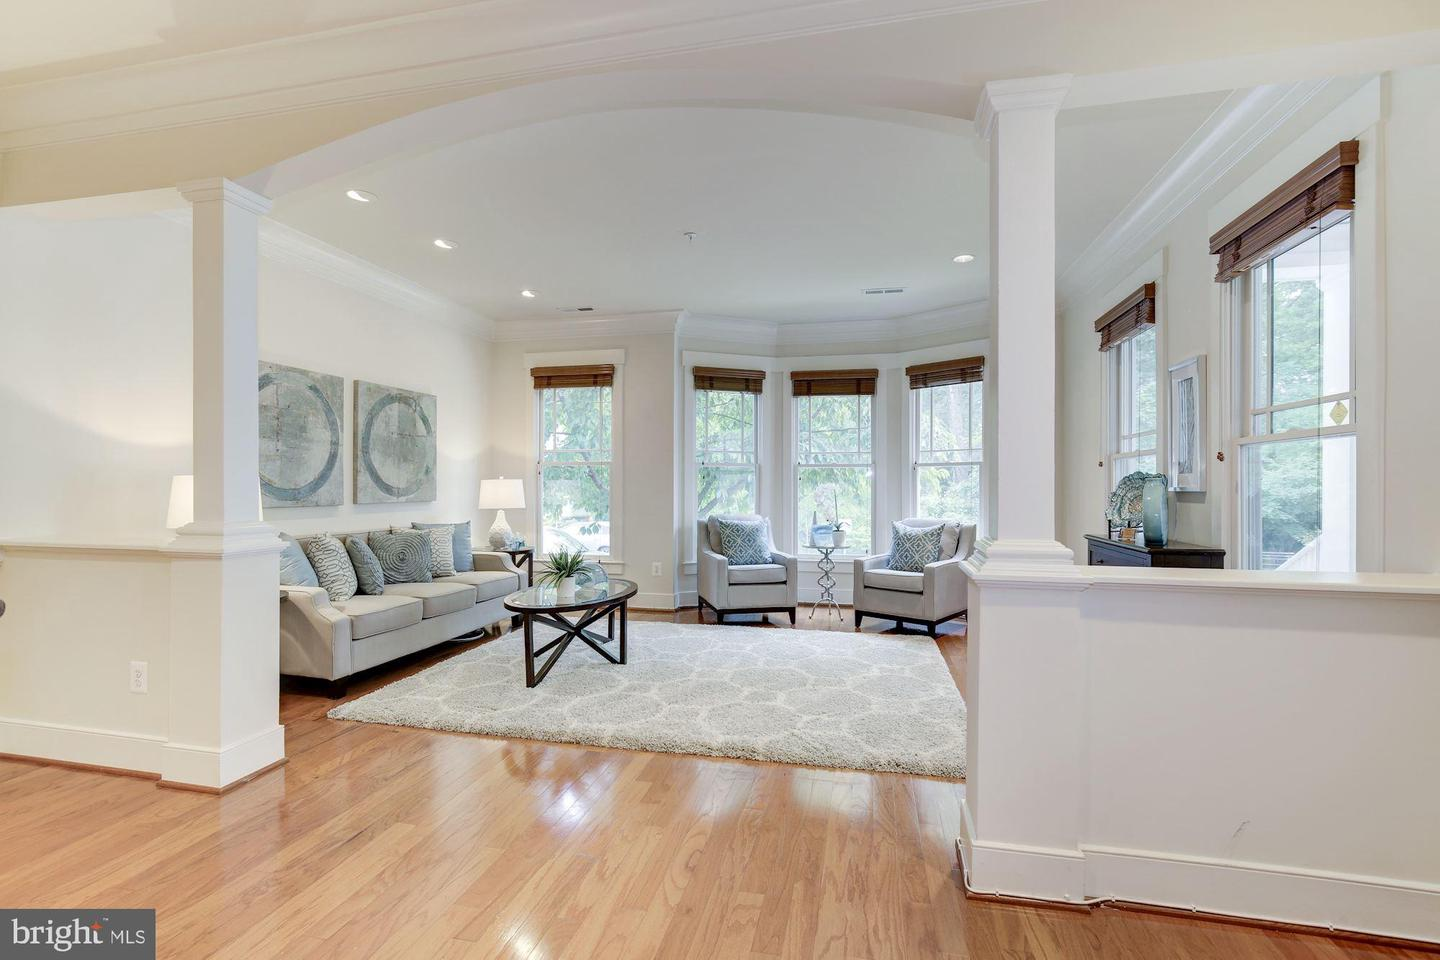 Additional photo for property listing at 9537 Ament St Silver Spring, Maryland 20910 United States